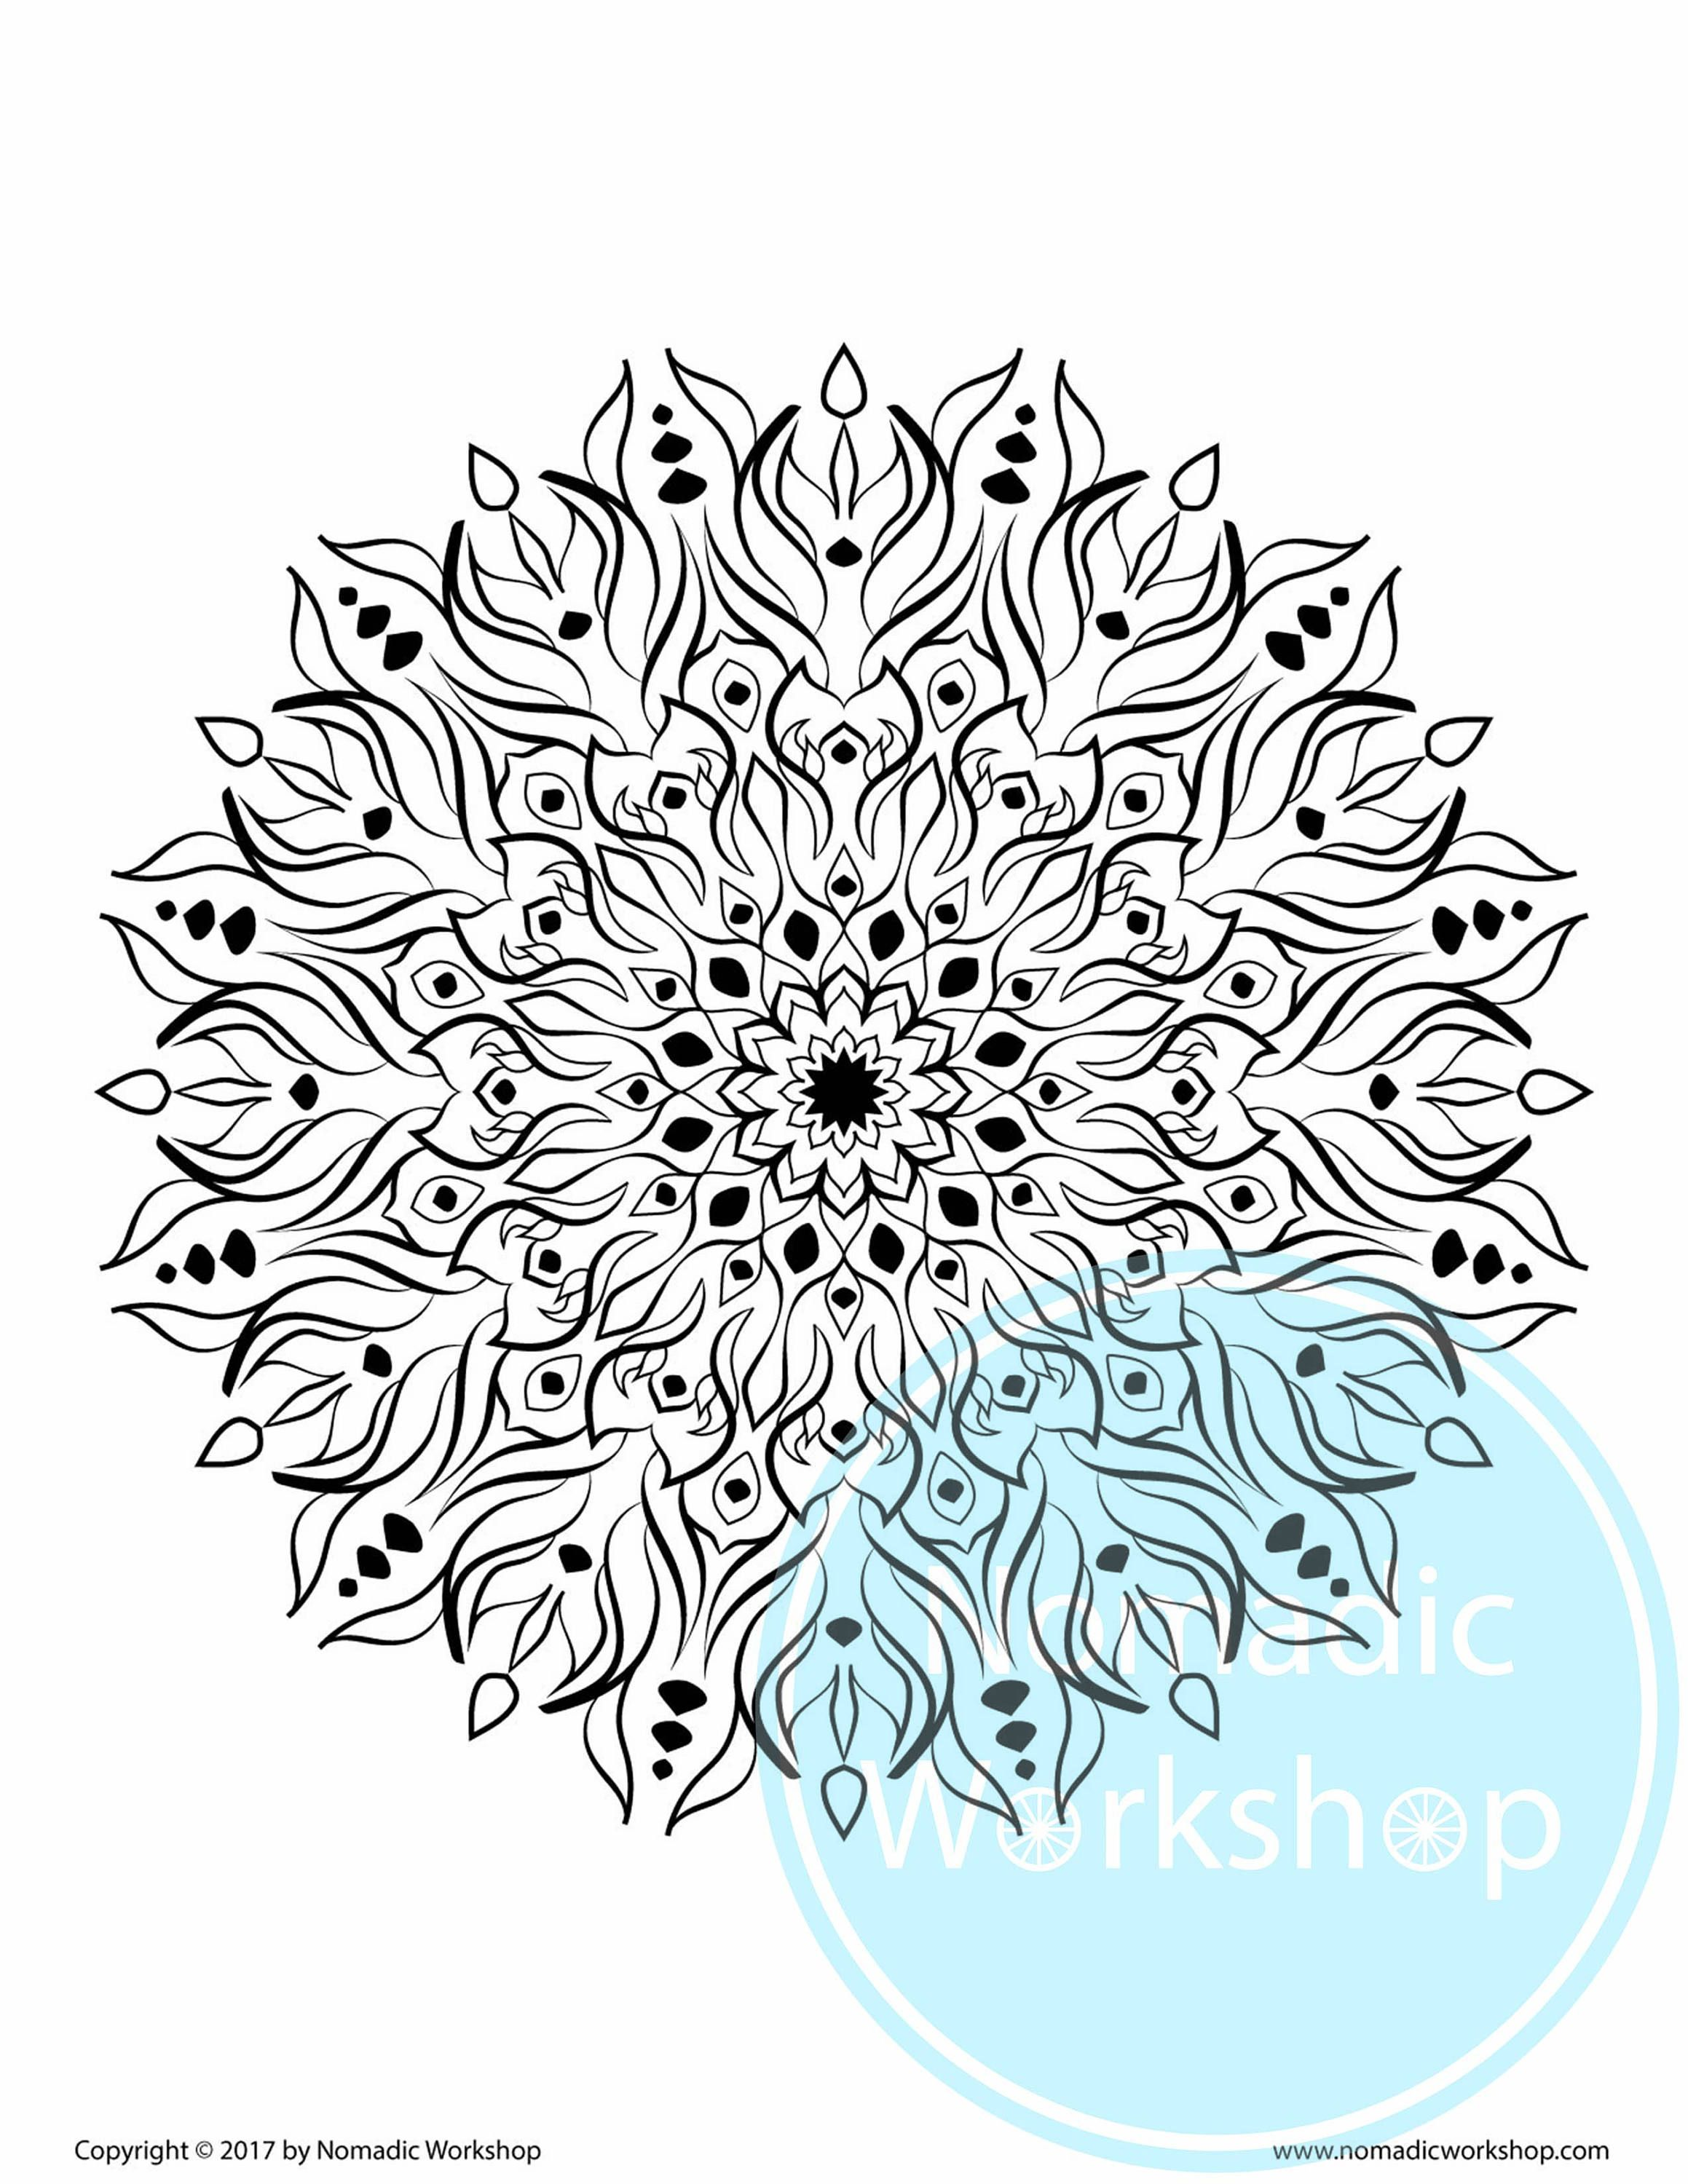 Stress relief coloring pages mandala - Mandala 1 Free Coloring Page Coloring For Adults Adult Coloring Pages Instant